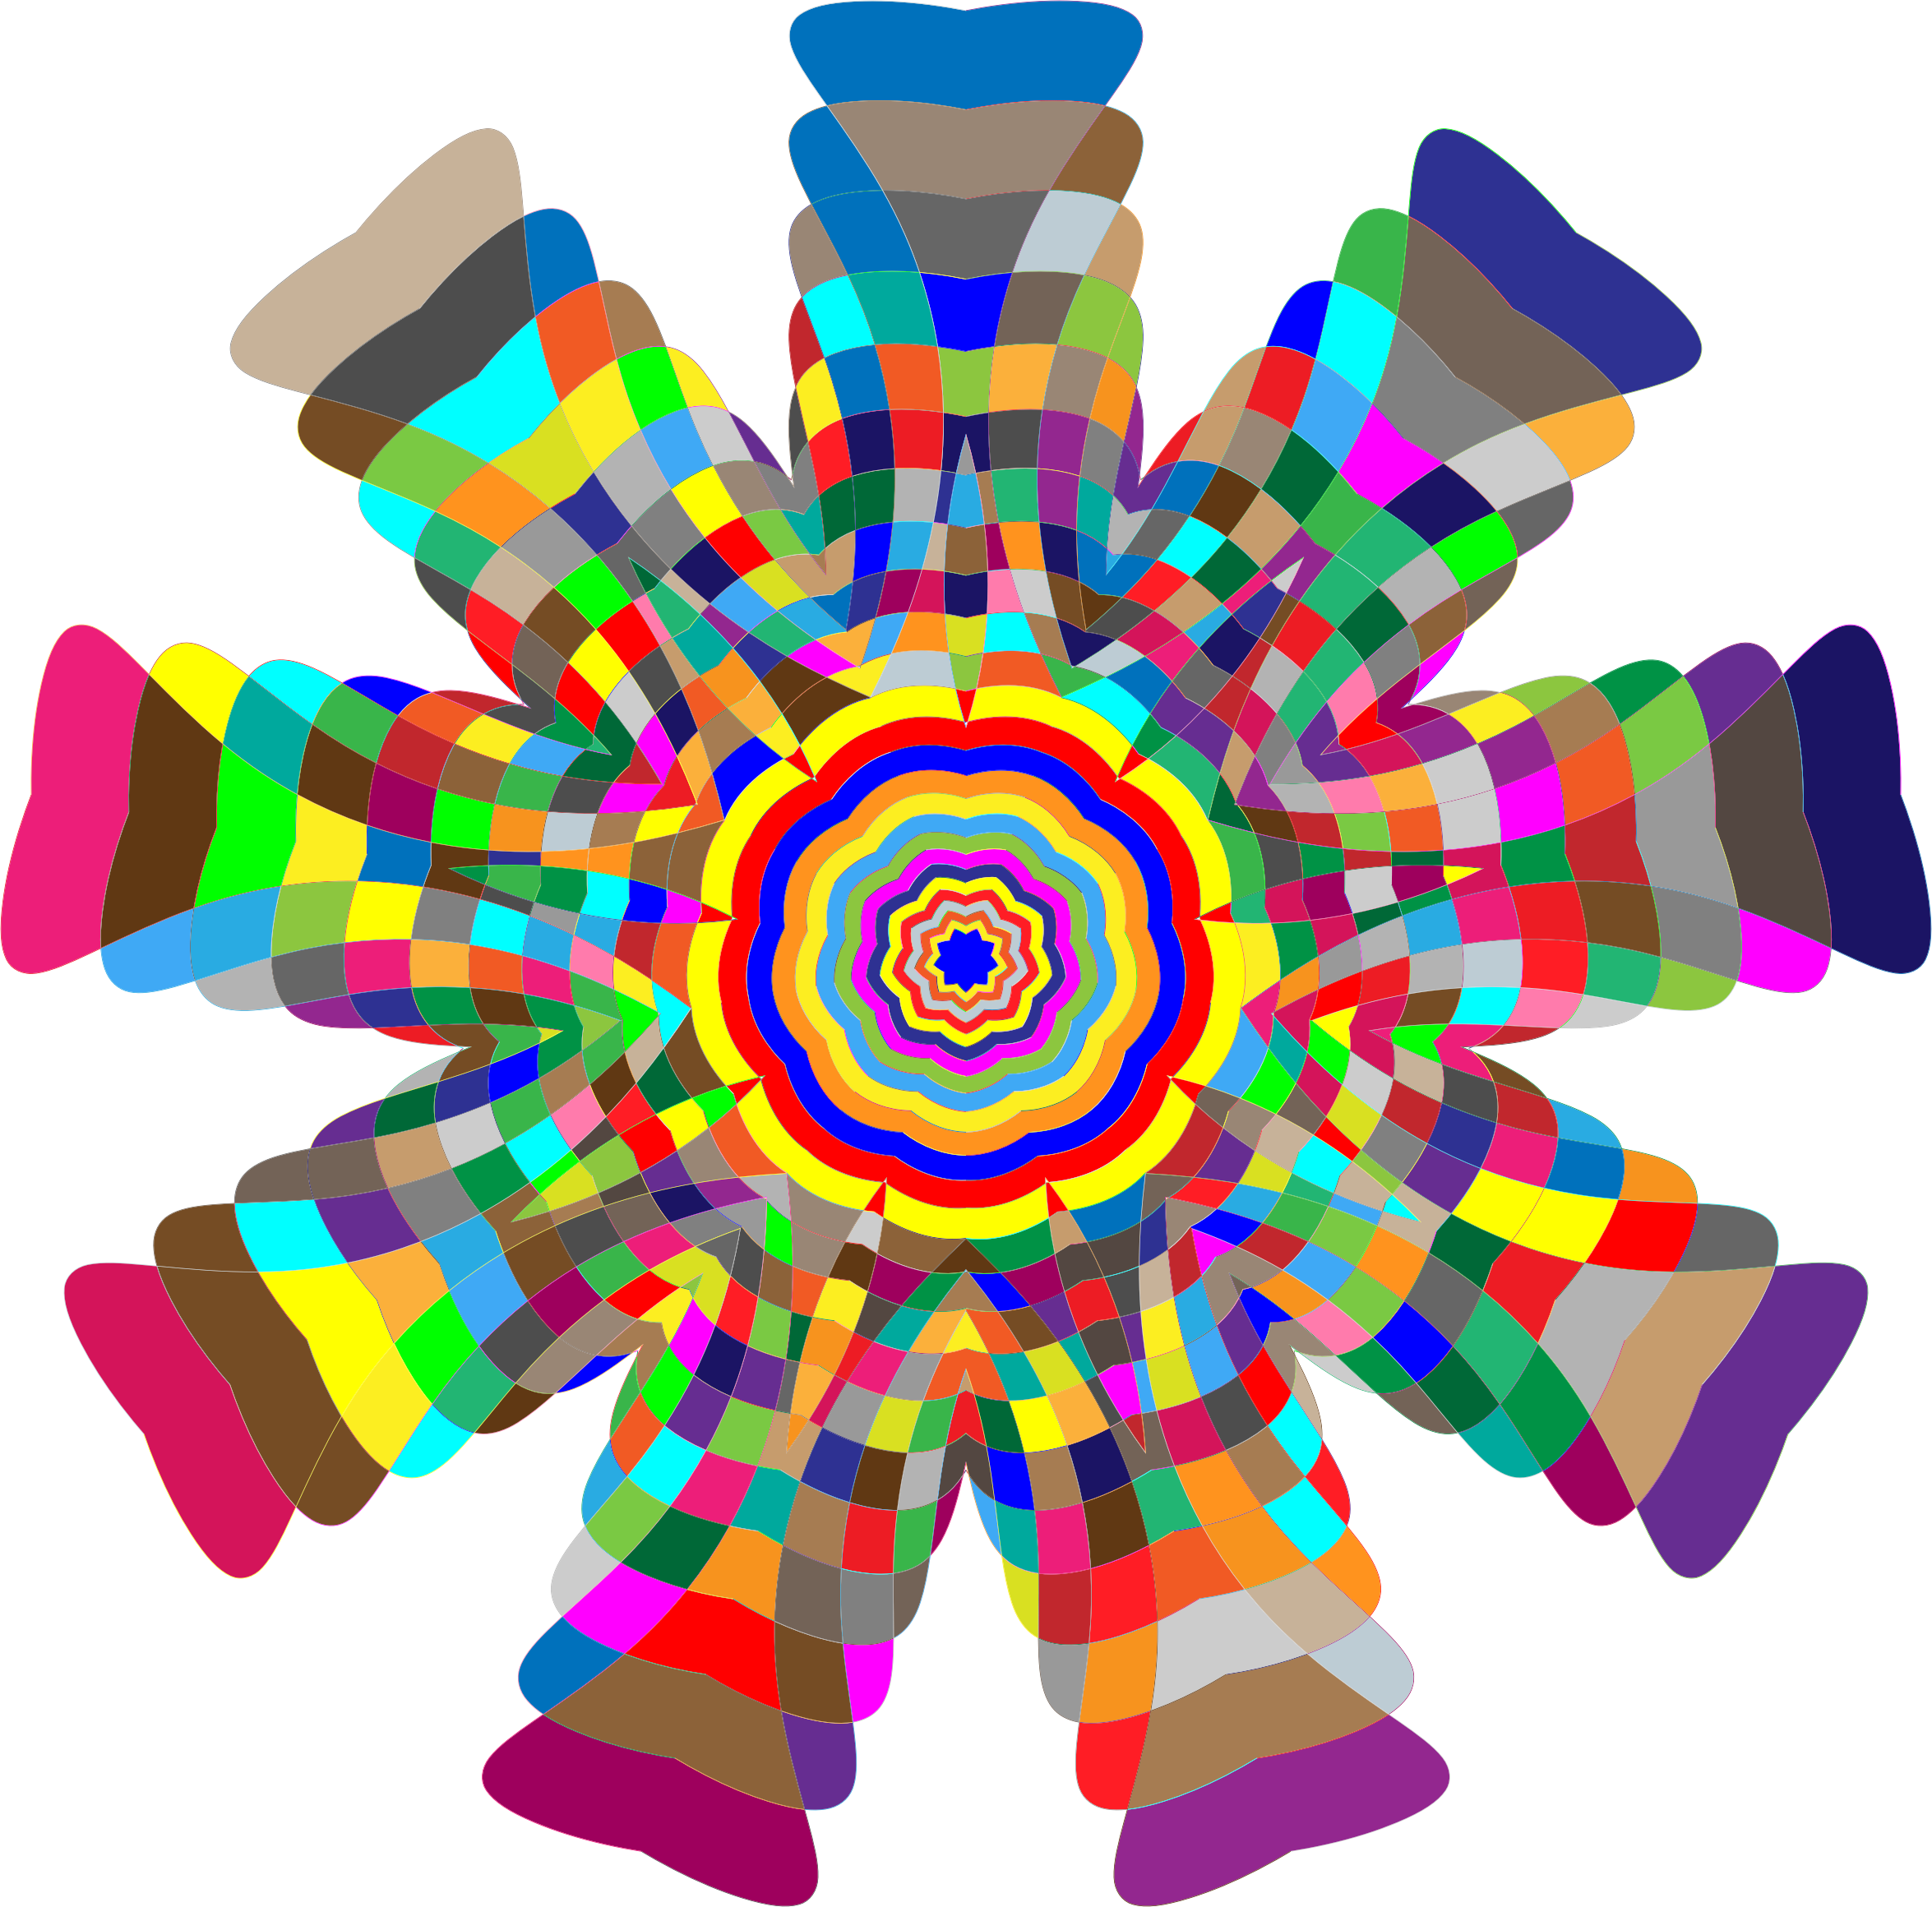 Clipart - Colorful Geometric Form